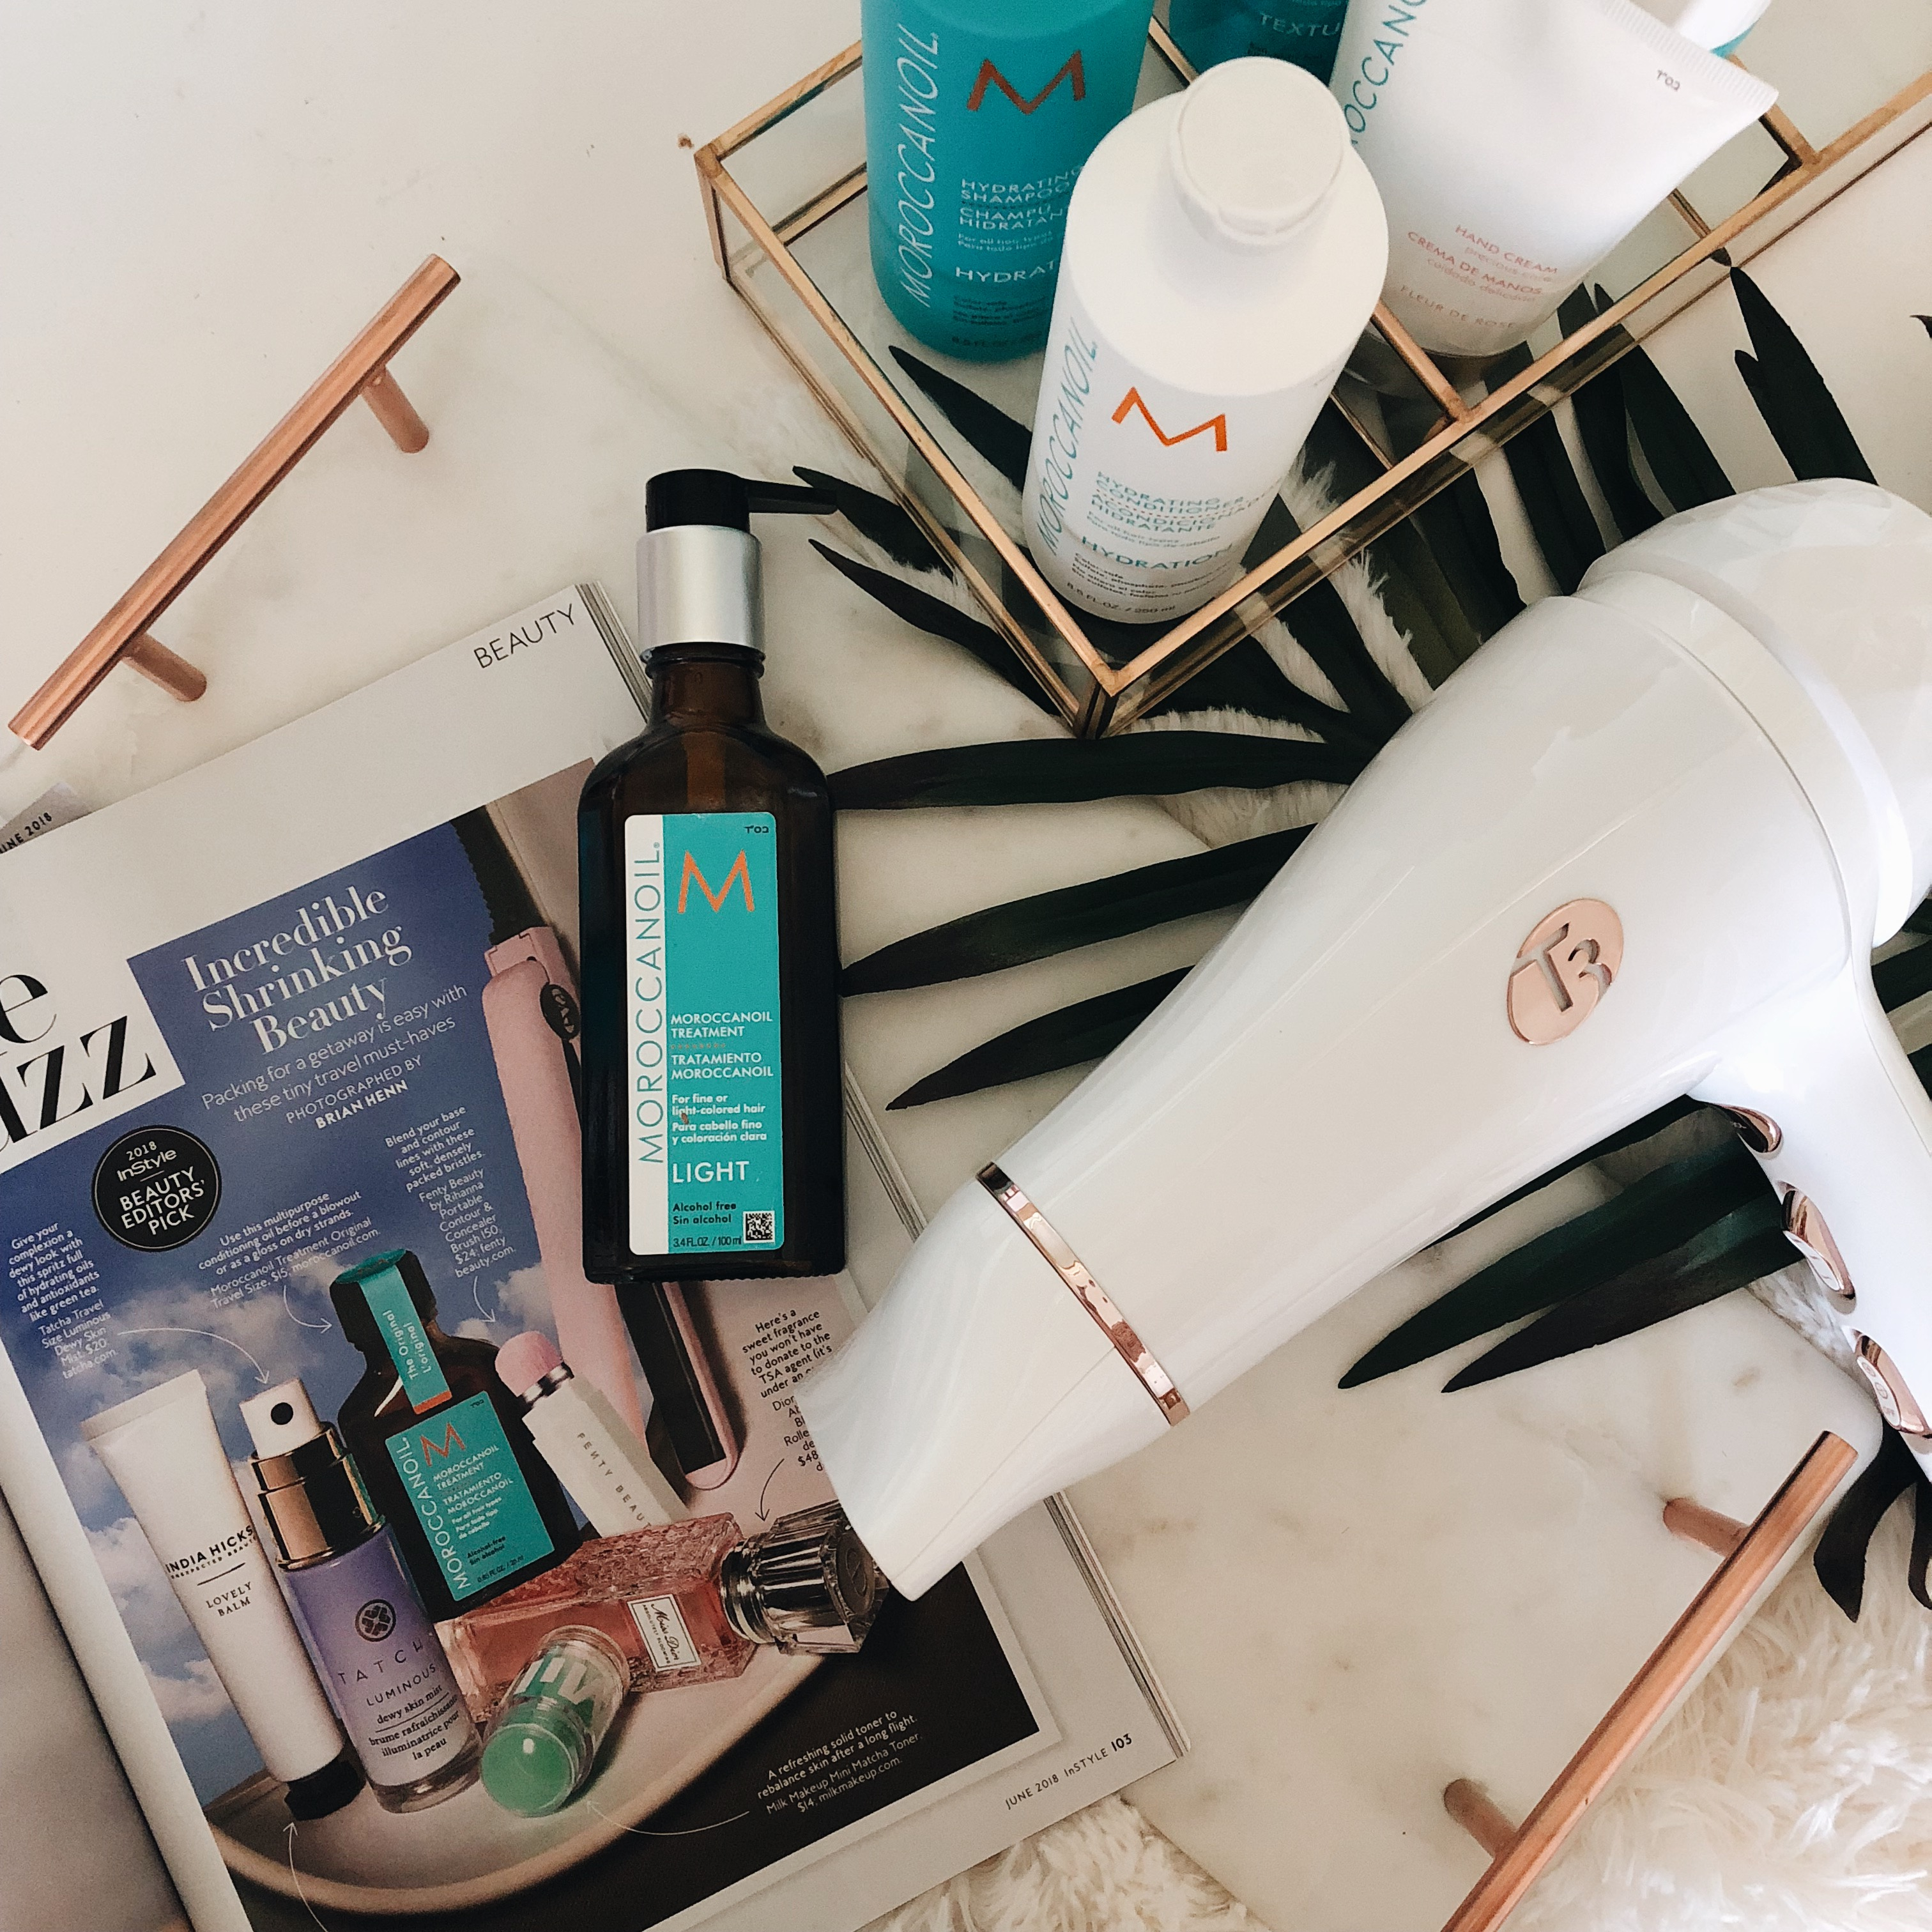 MOROCCANOIL PRODUCT REVIEW- Jaclyn De Leon Style- beauty review + hair products + hair treatment + body care + hair care + shampoo and conditioner + beauty blog + volumizing + body lotion + body wash